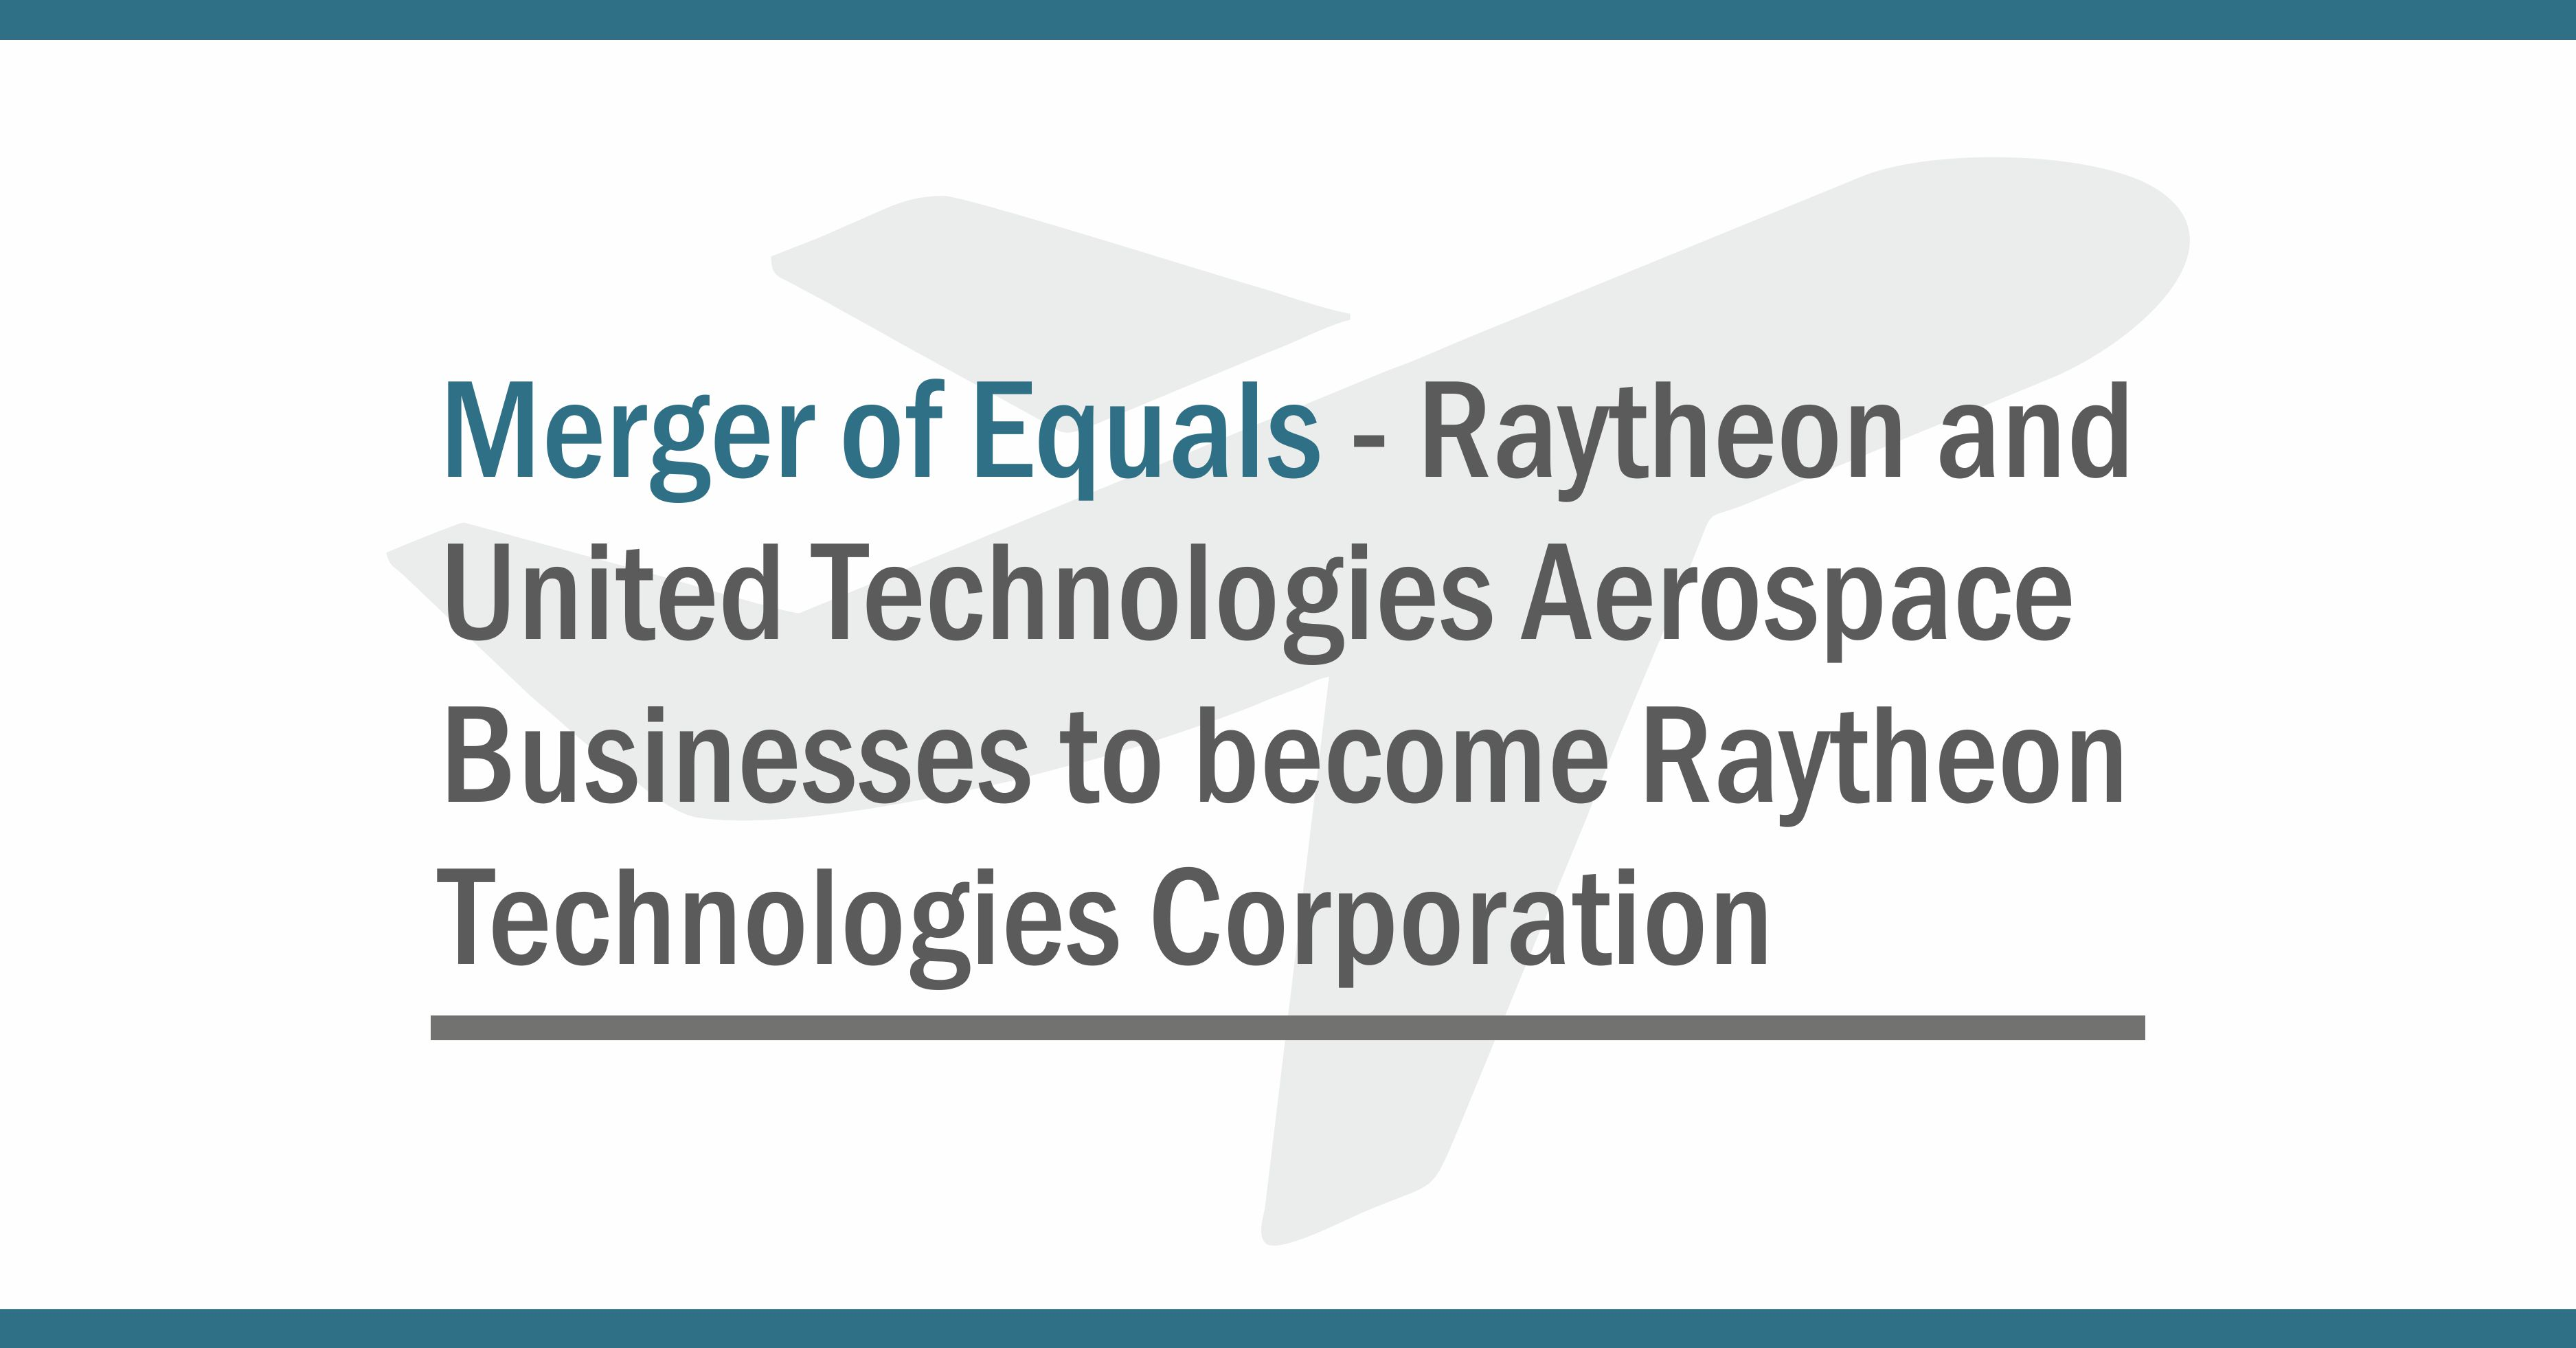 UTC & Raytheon to Combine in Merger of Equals